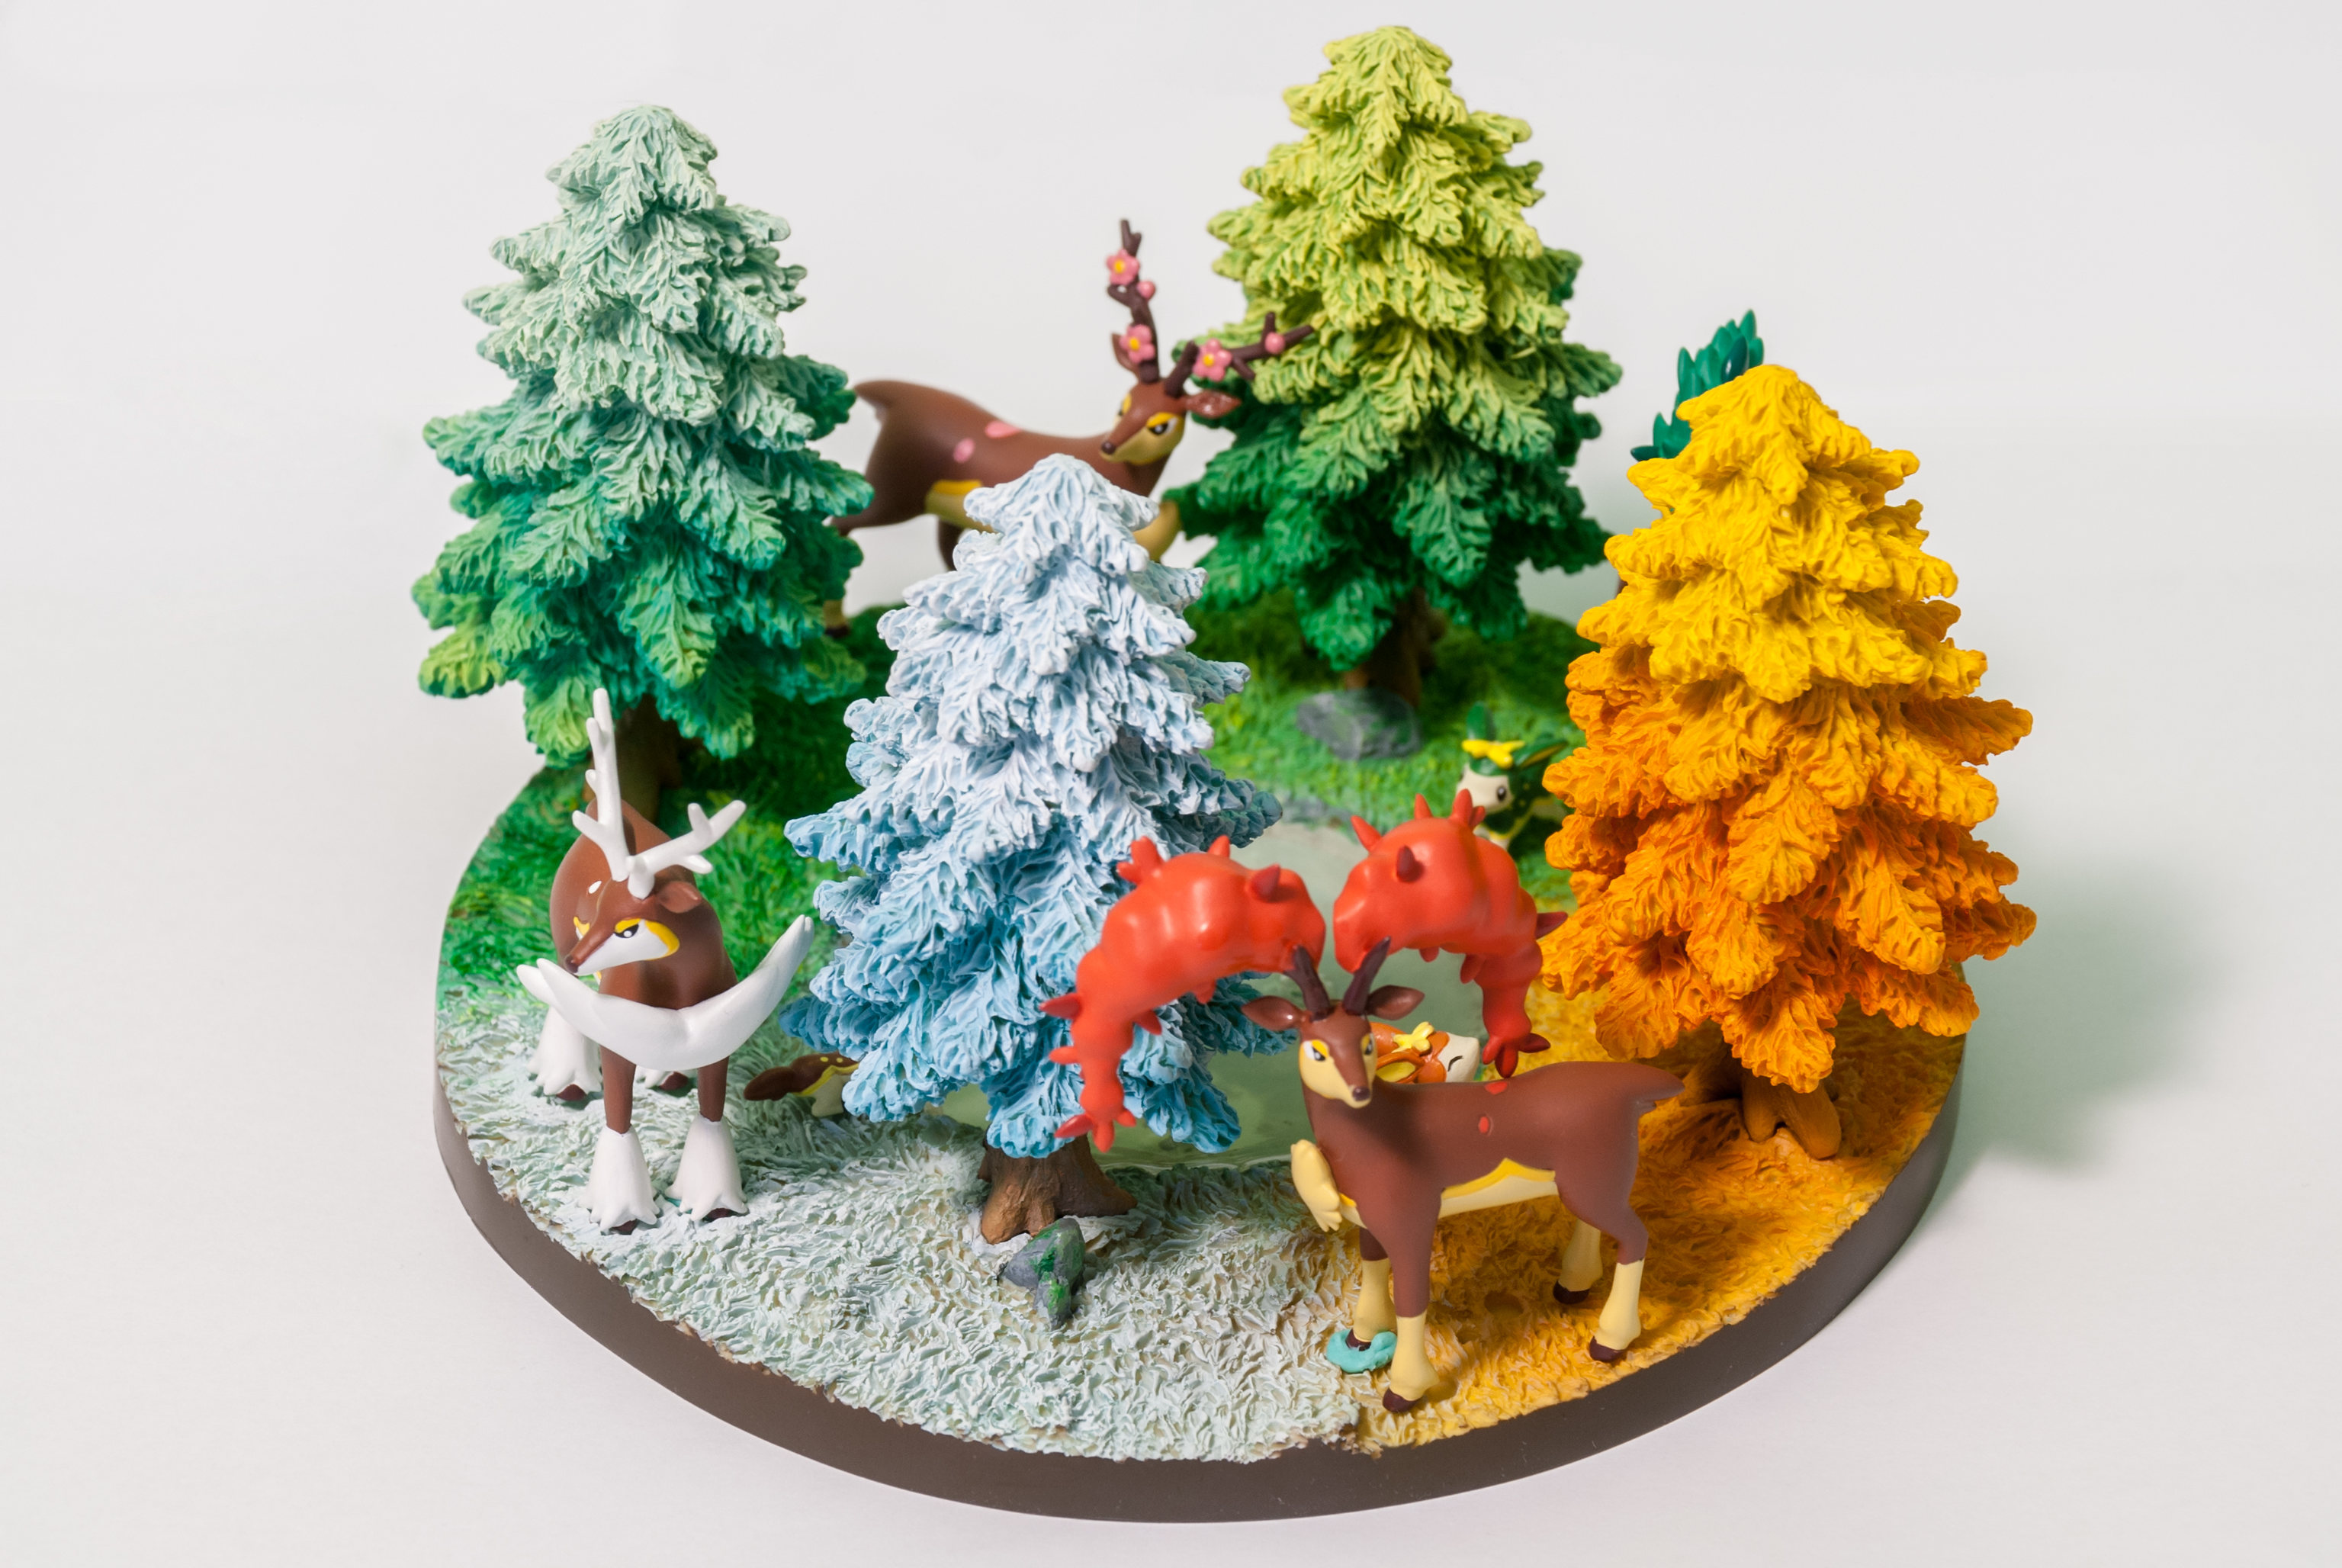 King Studio 14: 4 x Deerling / 4 x Sawsbuck